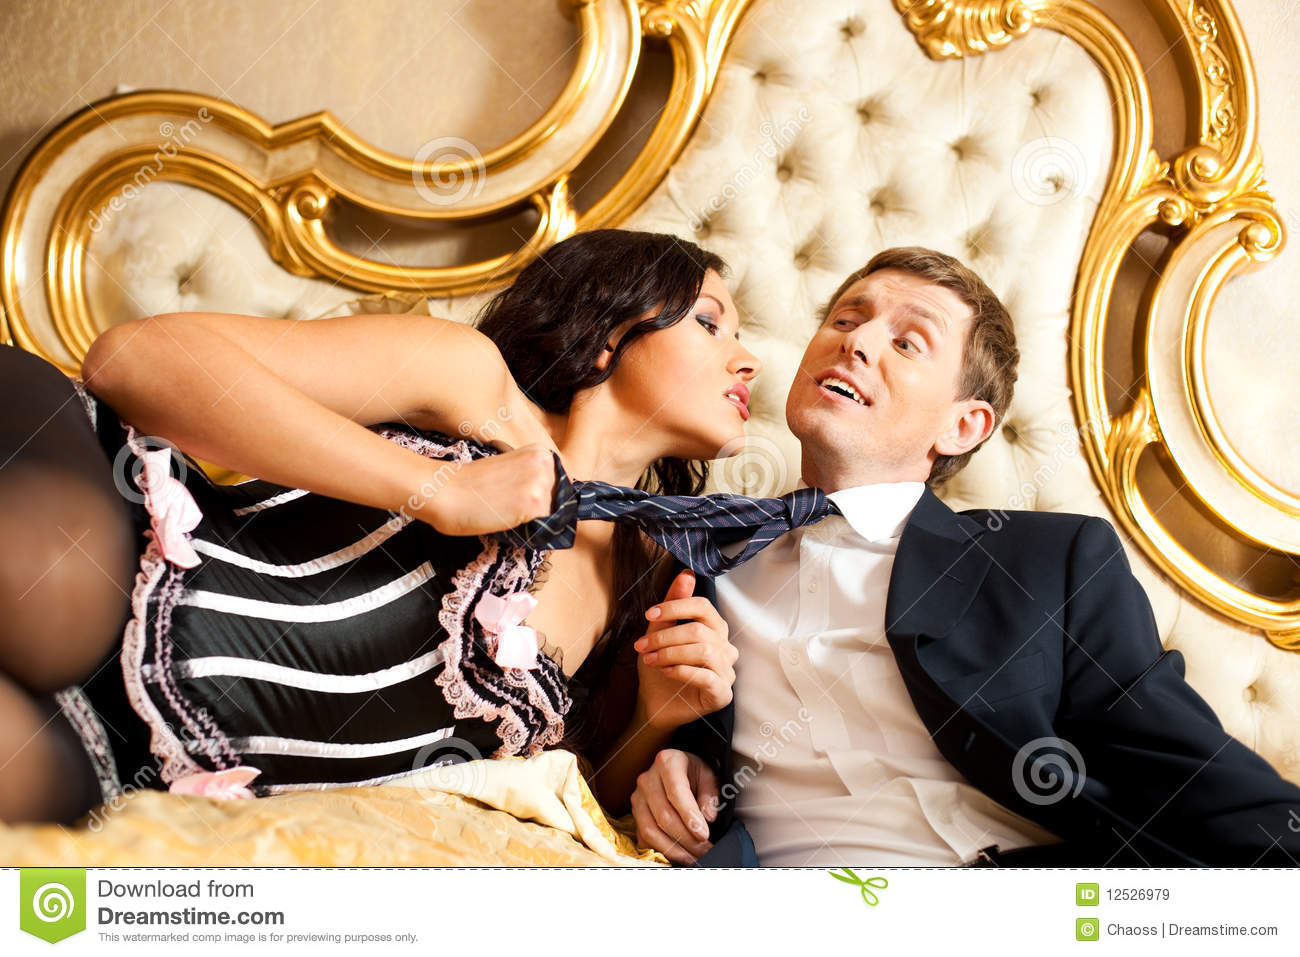 Image result for man and woman in bed